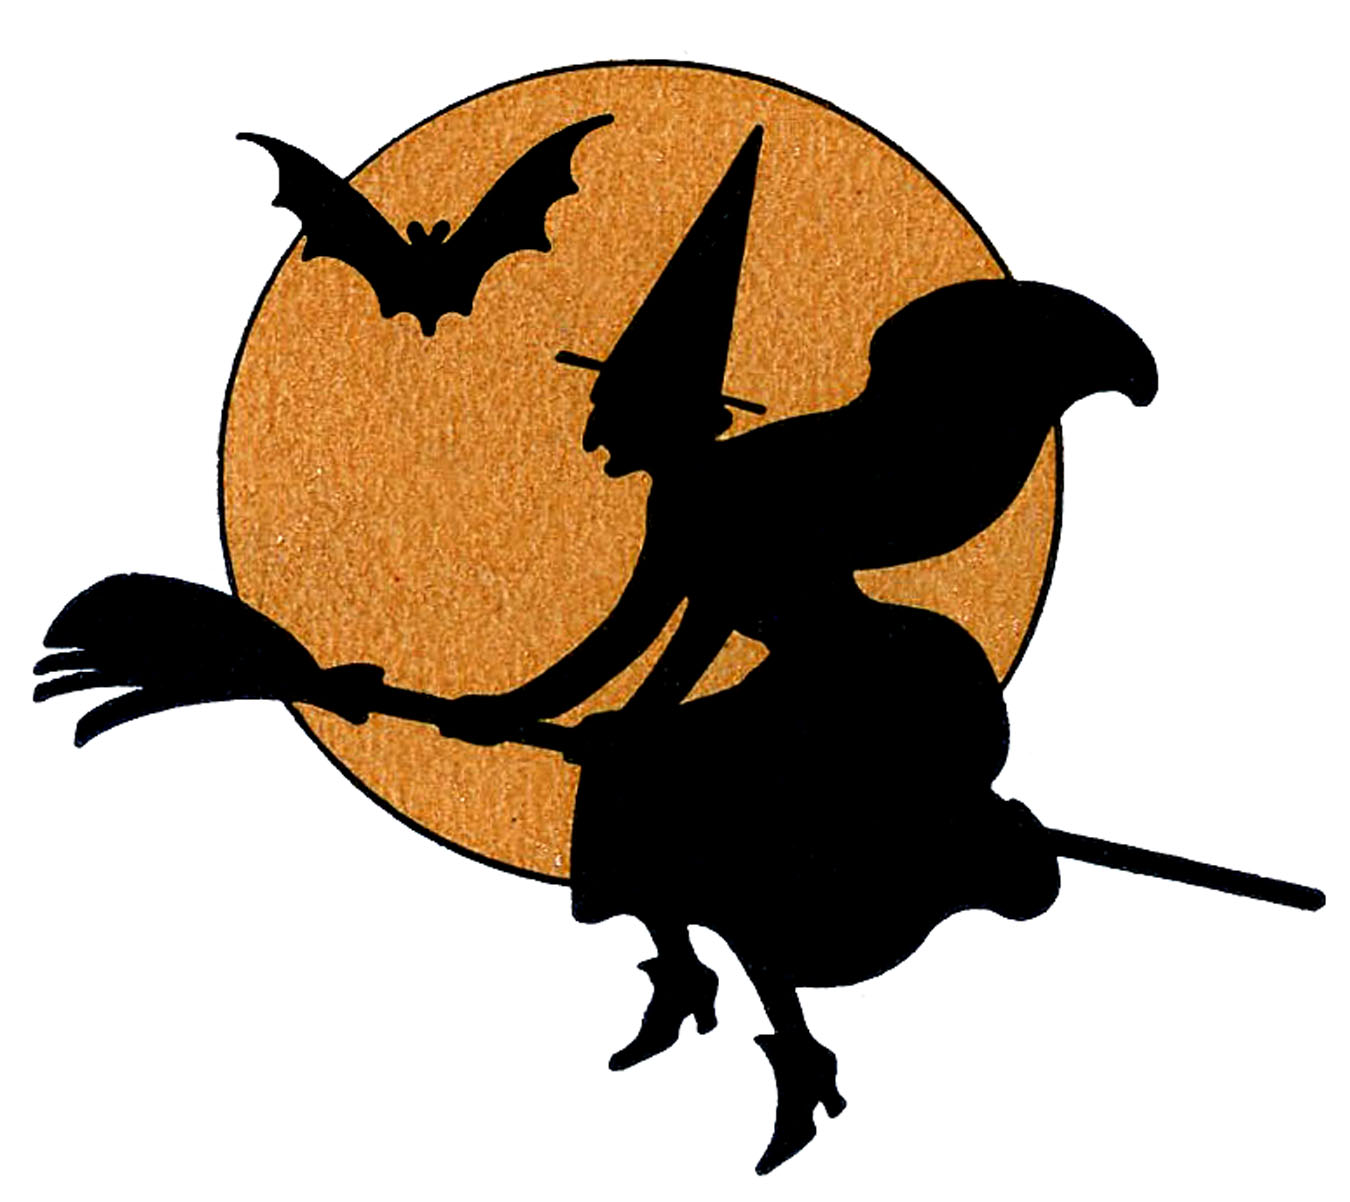 Vintage Halloween Clip Art - Witch with Moon - The Graphics Fairy